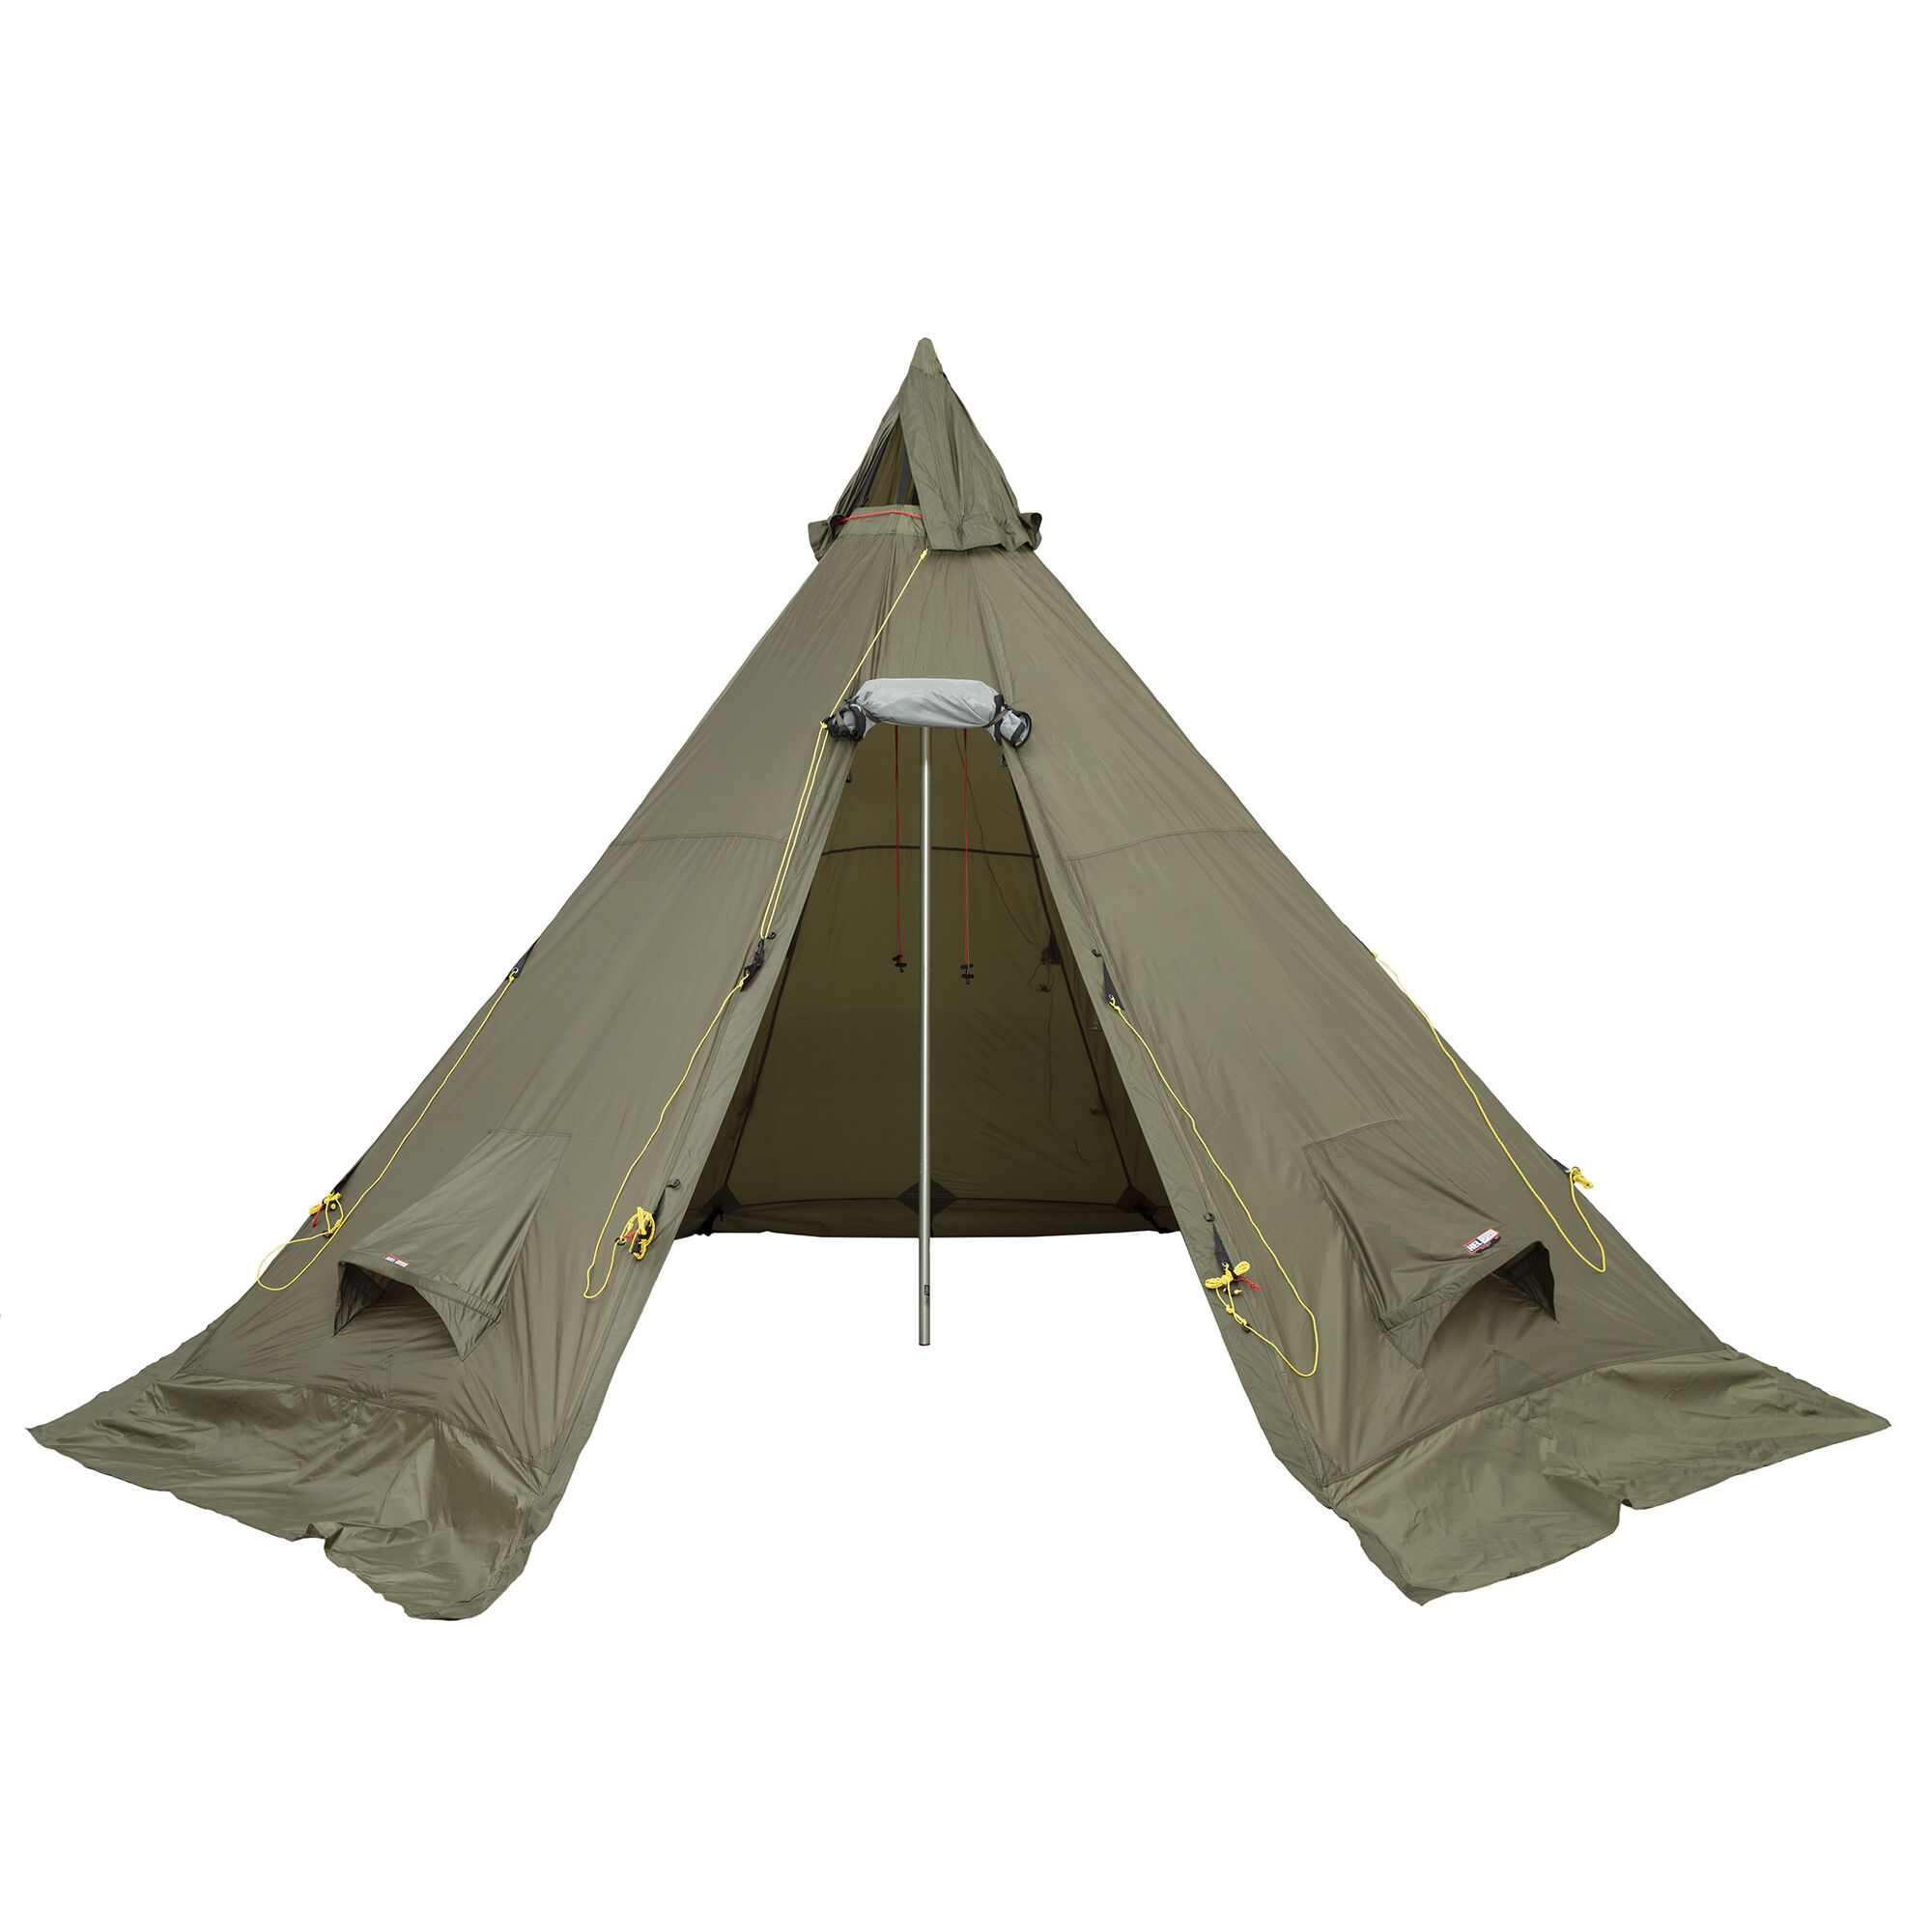 Varanger 4 6 Outer Tent incl. Pole